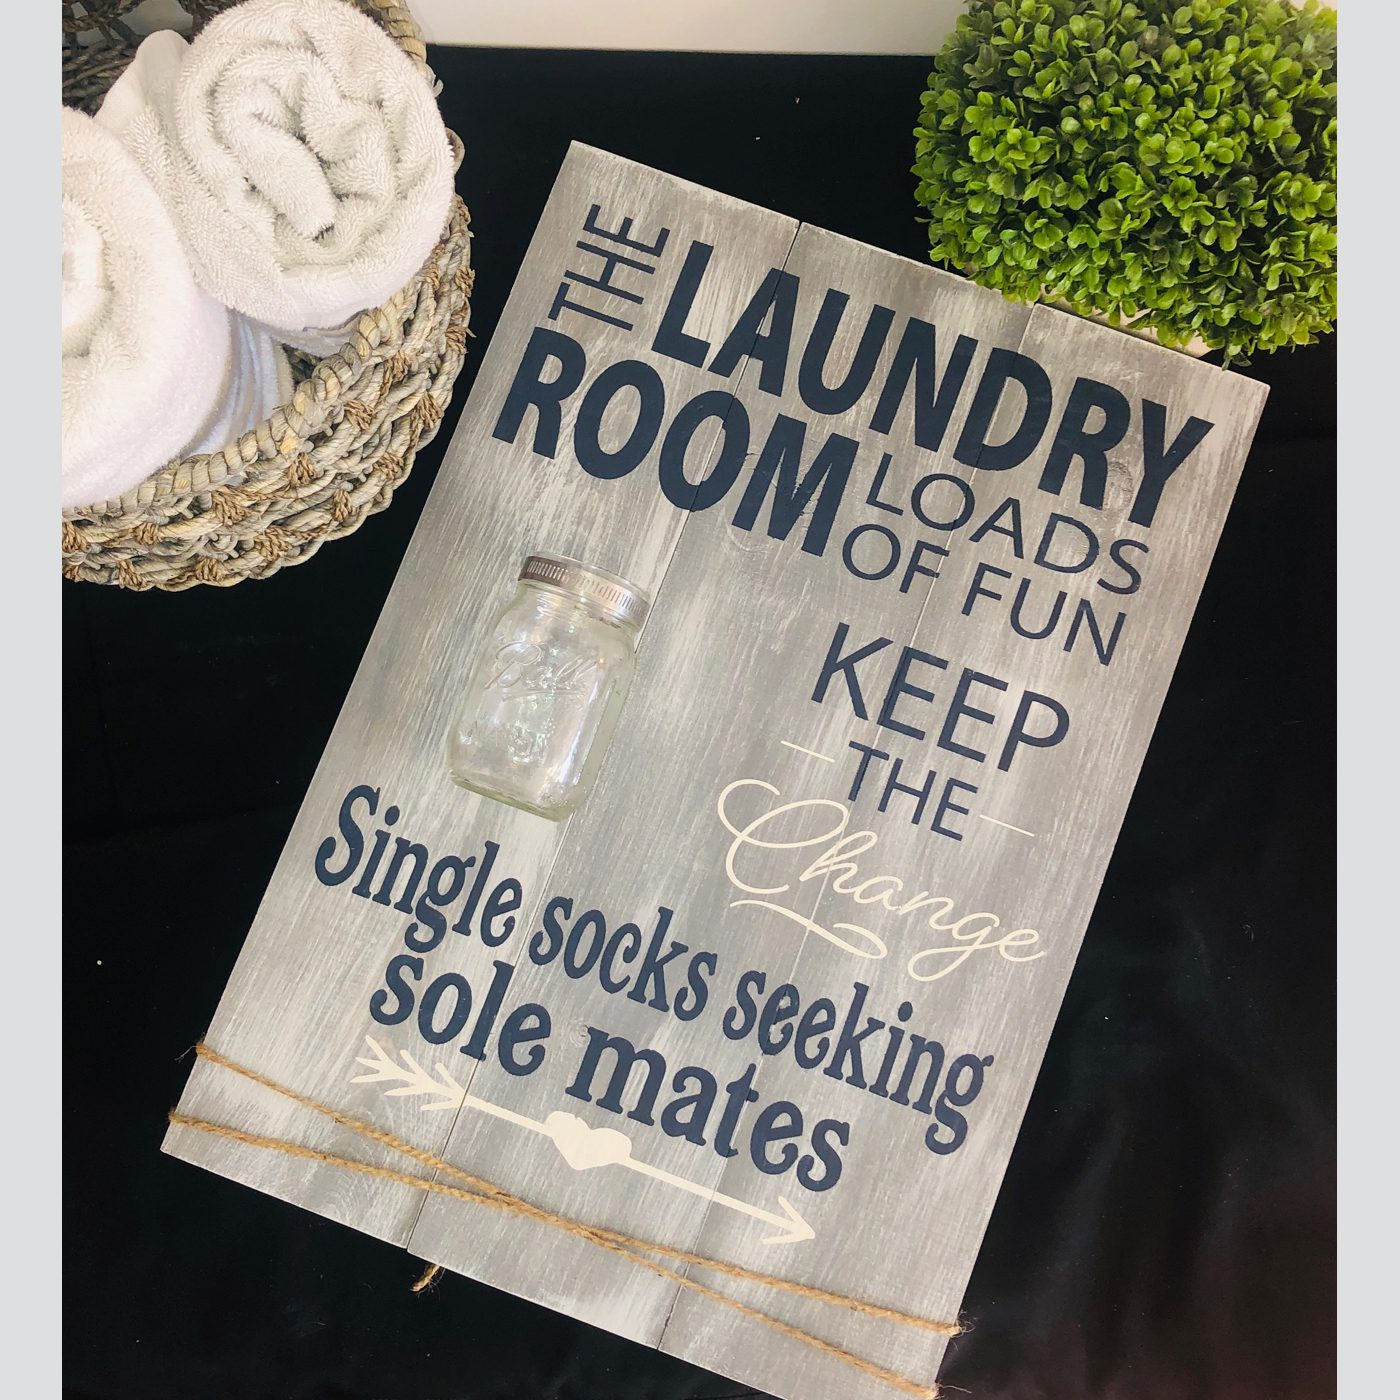 Laundry Room Loads of Fun with Mason Jar DIY wood sign